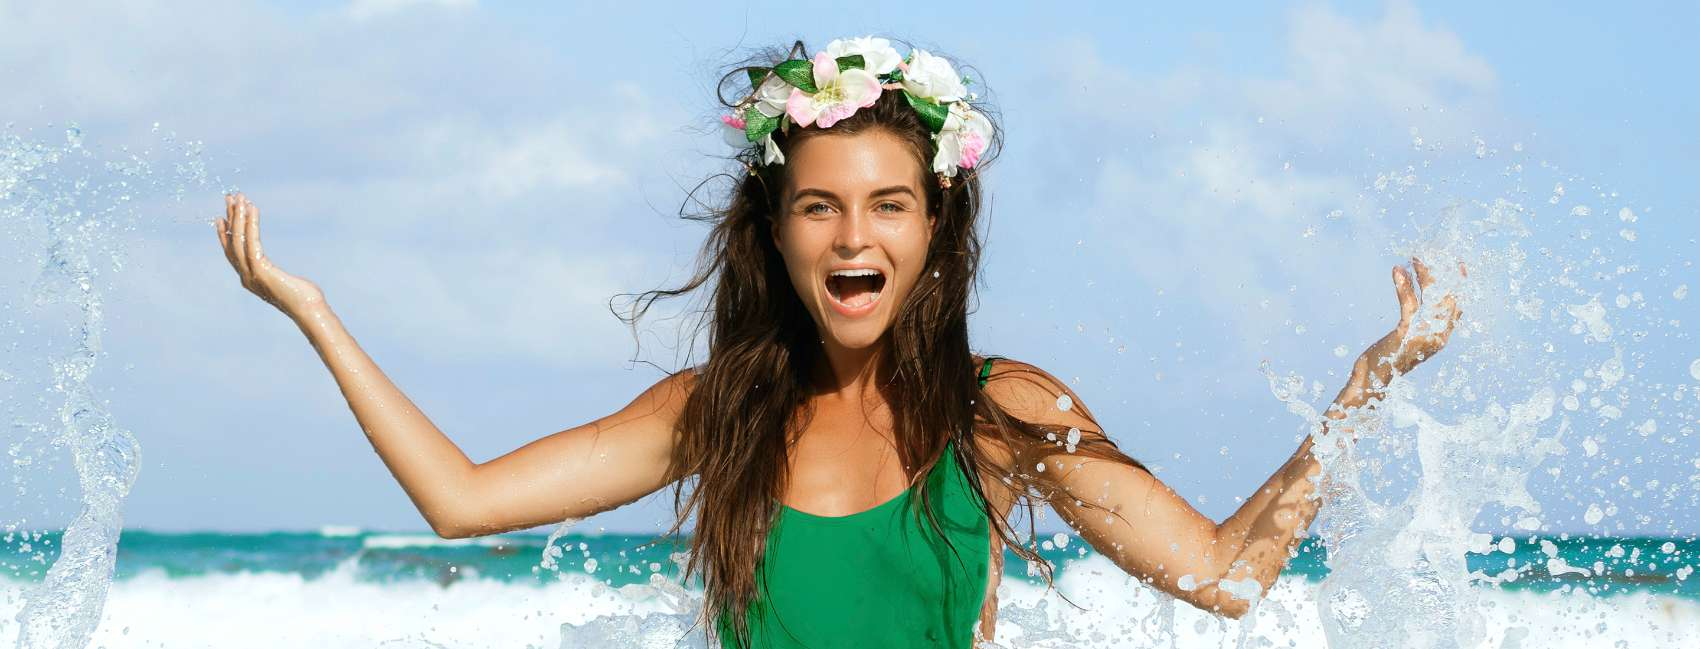 Smiling girl wearing a green top and flower crown, splashing around in the sea